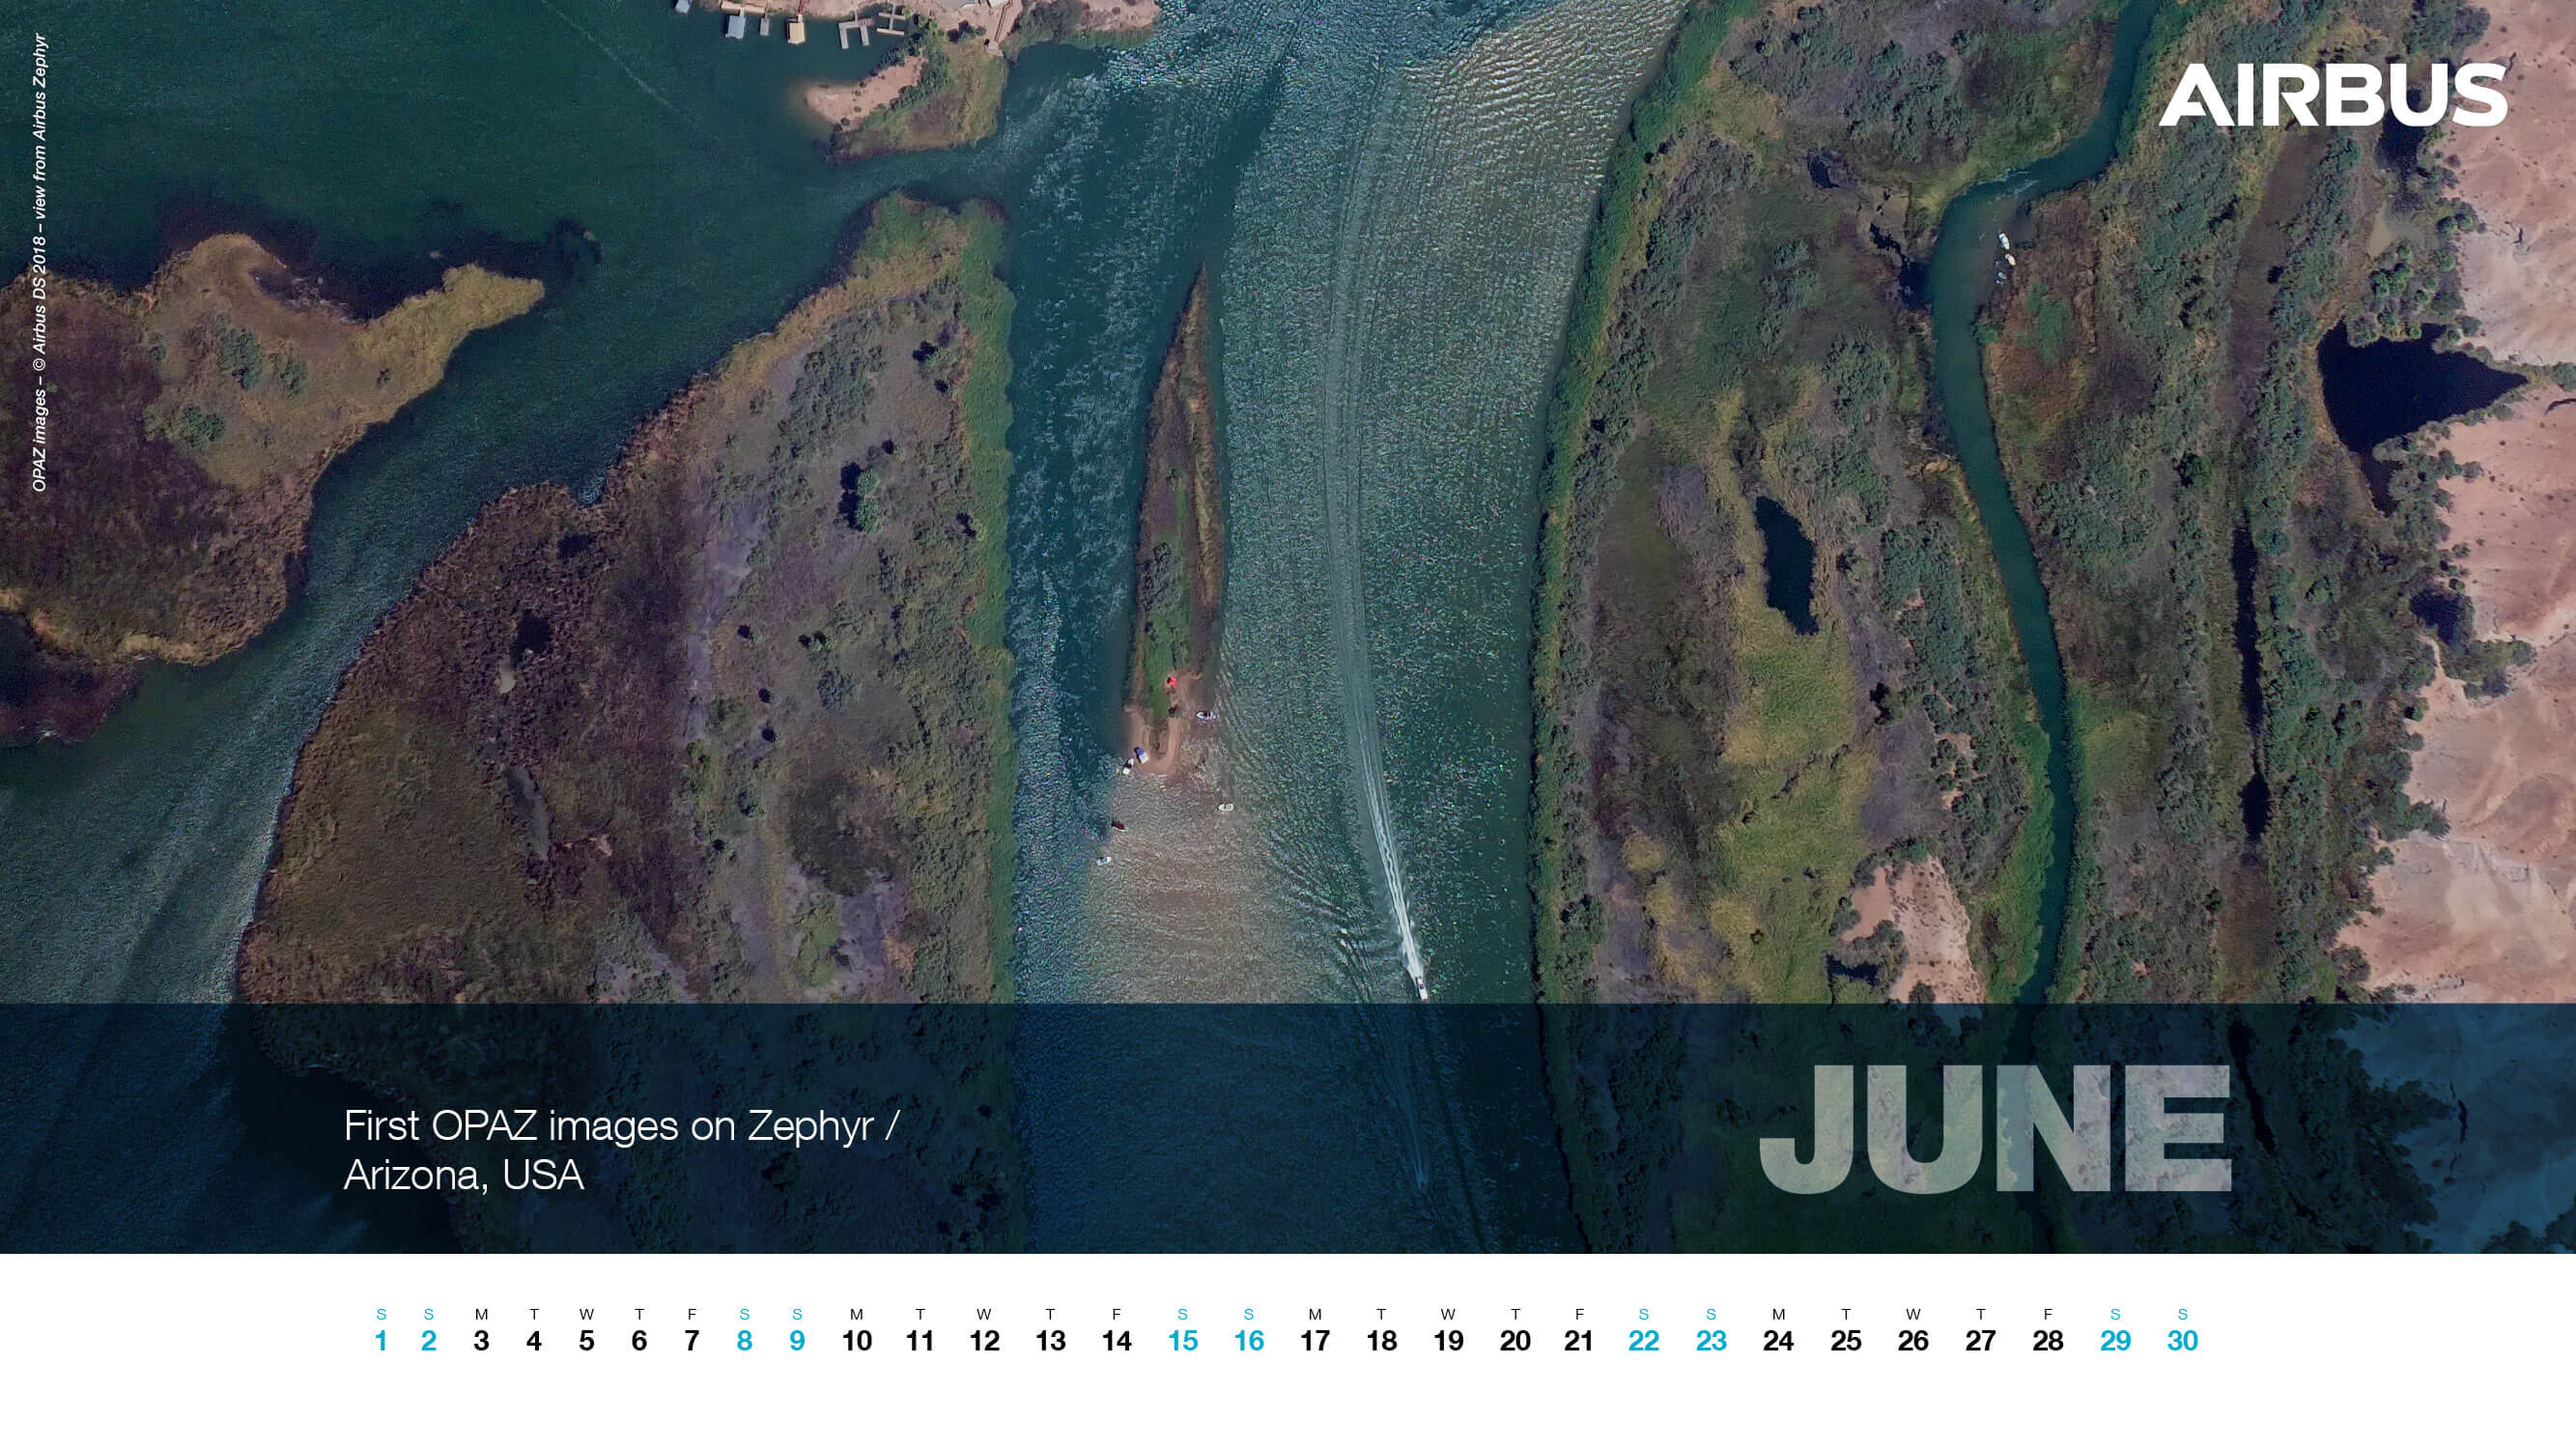 Calendar 2019 - June - First OPAZ images, Arizona, USA - Zephyr - 1920x1080